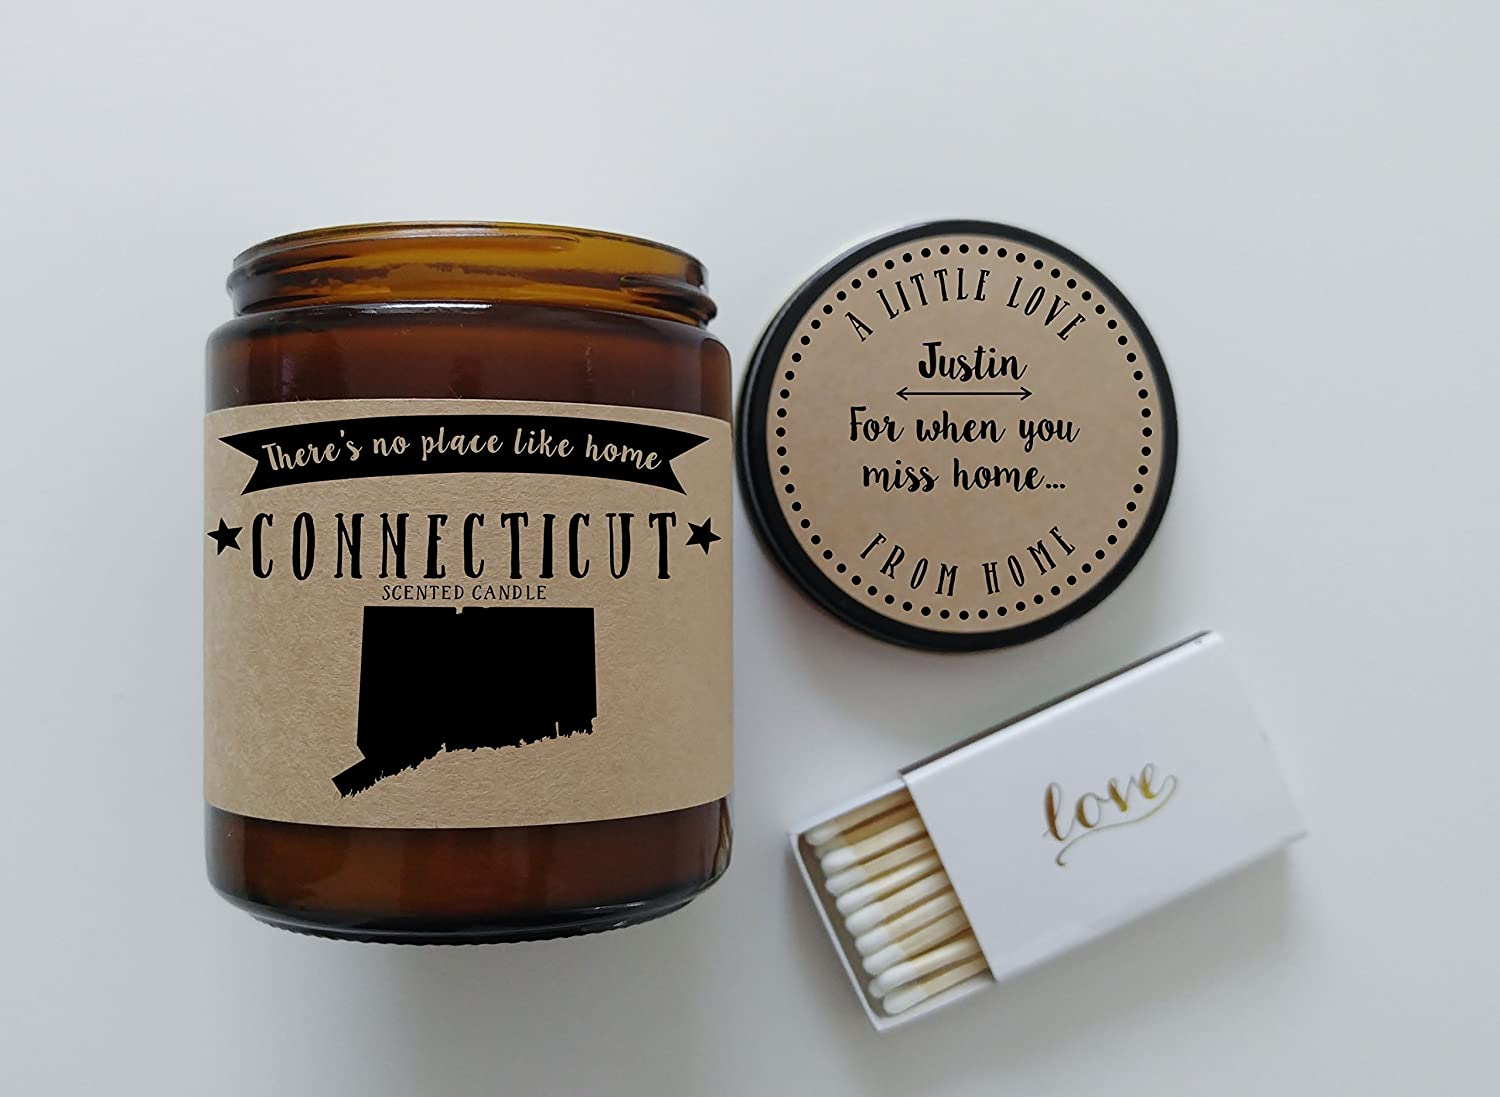 Amazon.com: Connecticut Scented Candle Missing Home Homesick Gift ...